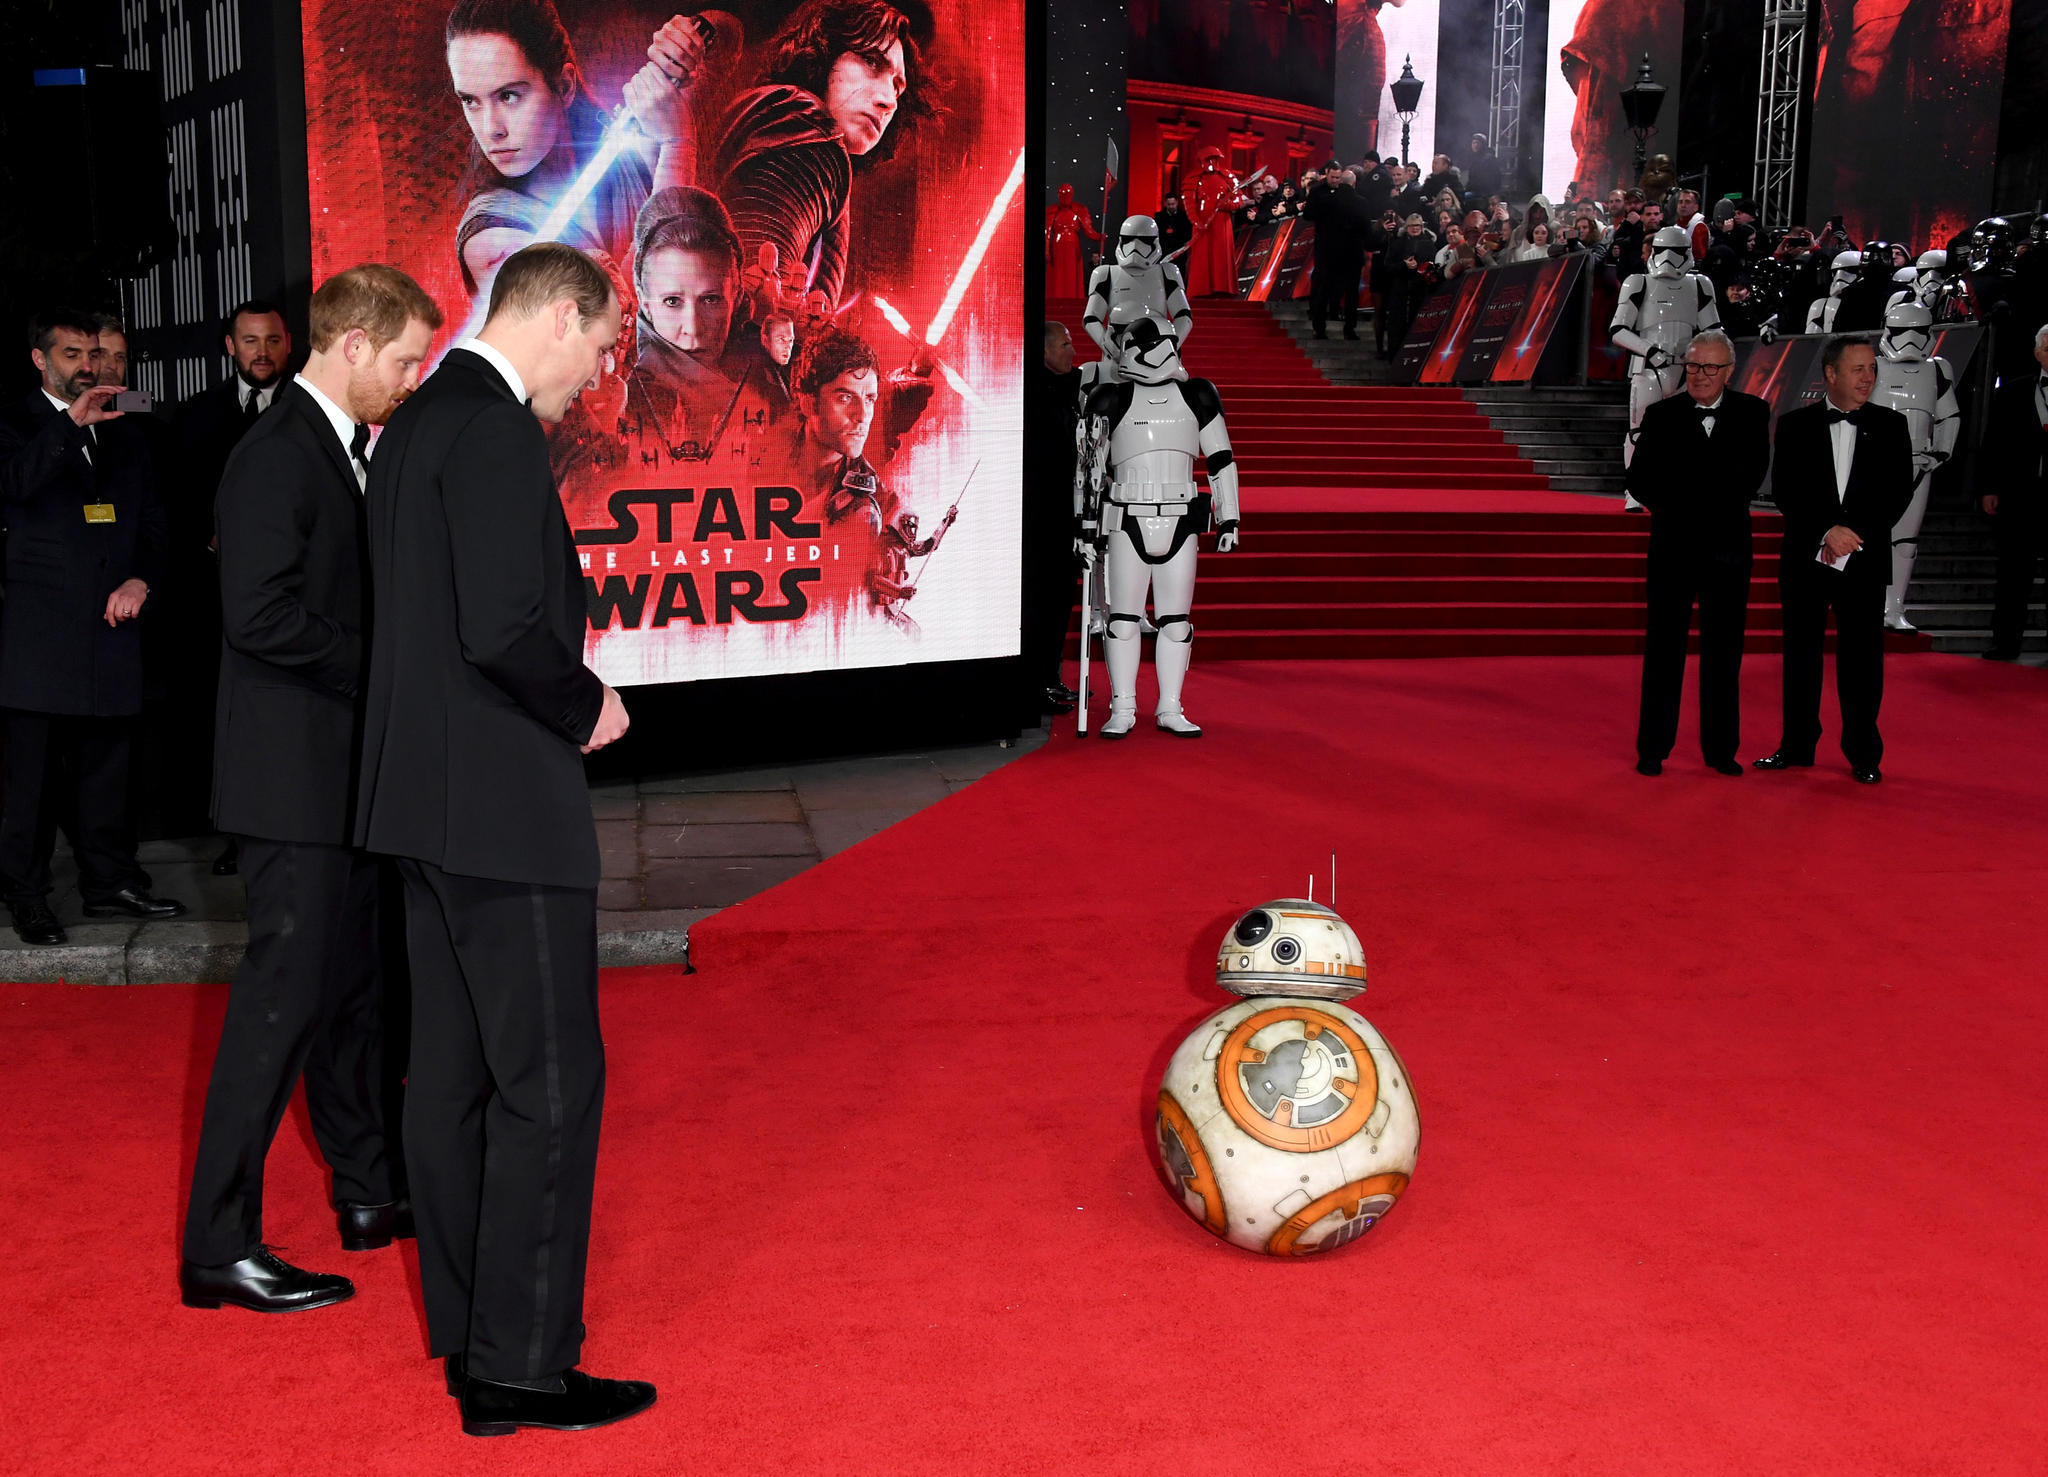 Prinz Harry und Prinz William mit BB-8.